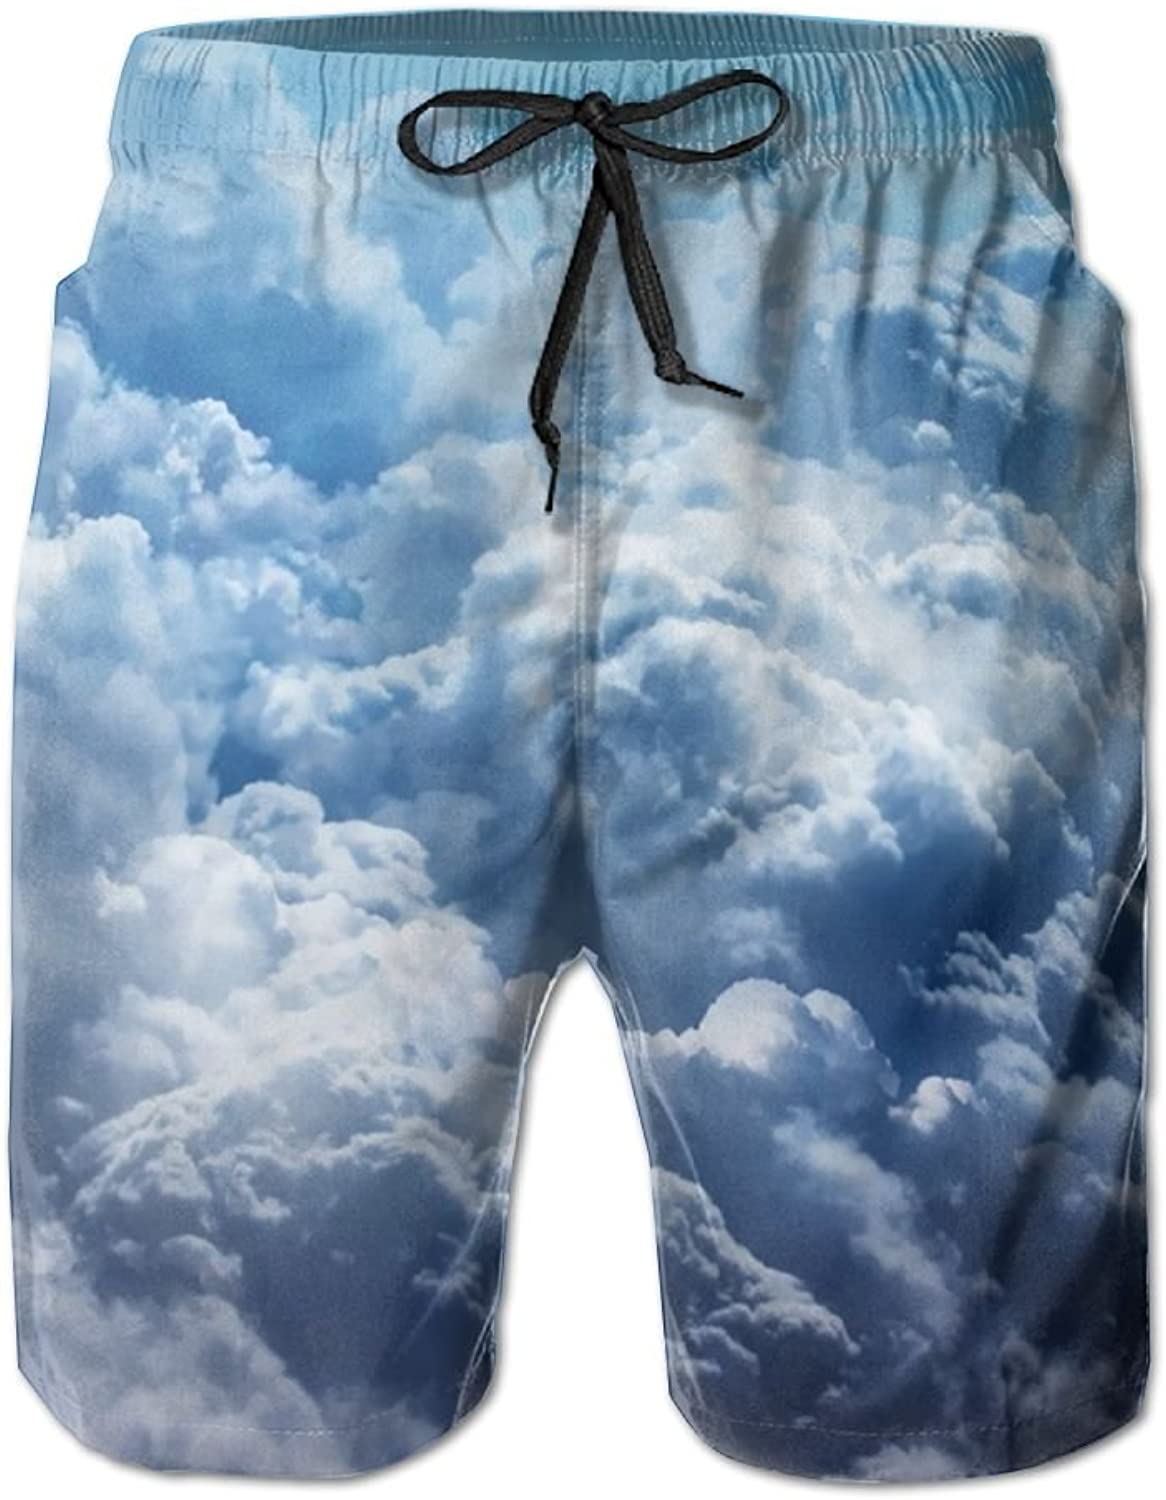 8aa4405d4b Quick Dry Men's Beach Board Shorts Clouds Clouds Clouds Surfing Swim Trunks  Beachwear With Pockets a0a92f